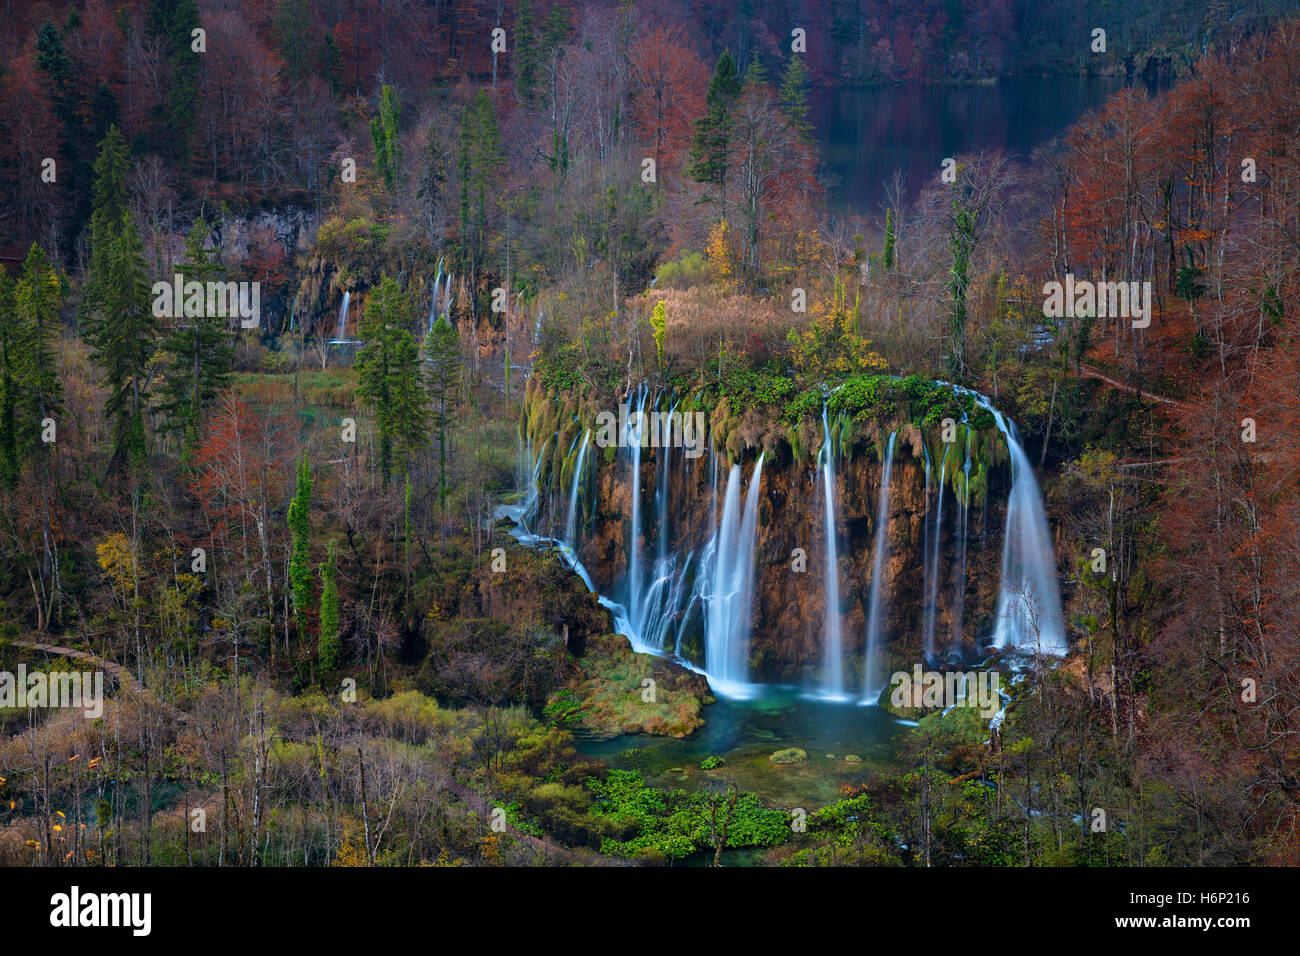 Plitvice Waterfall in autumn. Image of waterfall located in Plitvice national park, Croatia during autumn dawn. - Stock Image